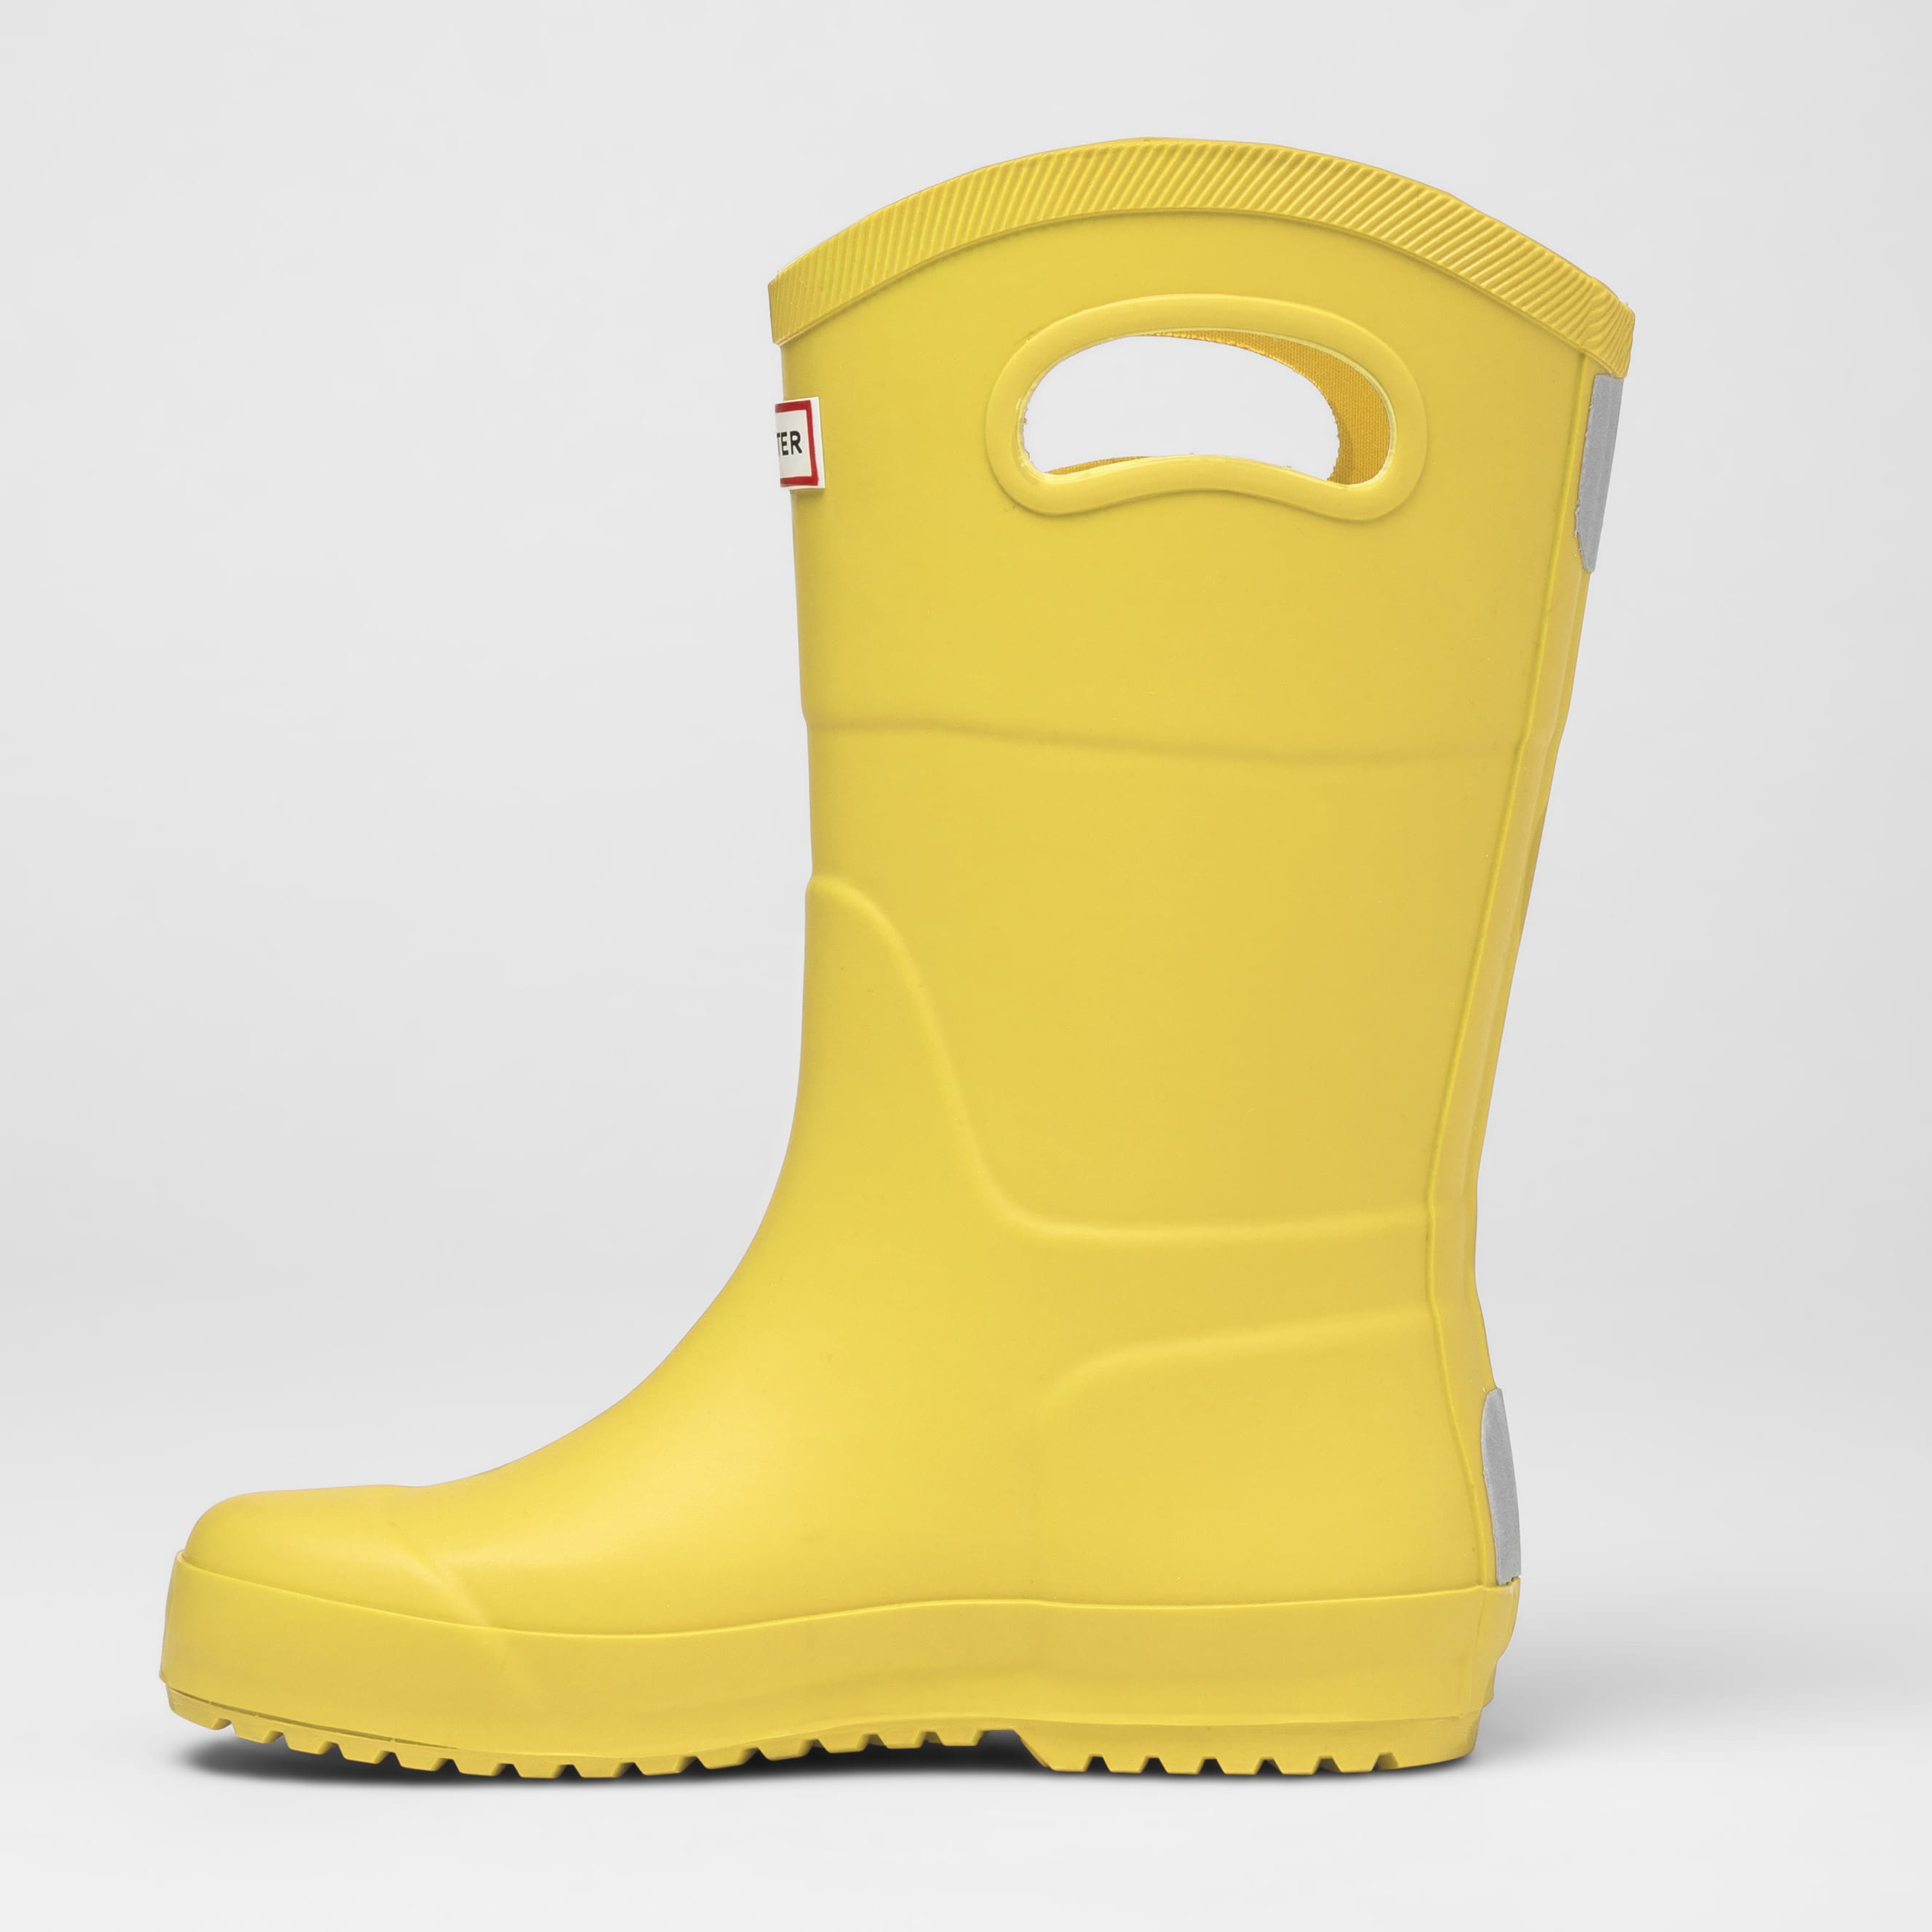 26877381a05 Target Hunter Boots Full Collection Preview Photos   Apartment Therapy